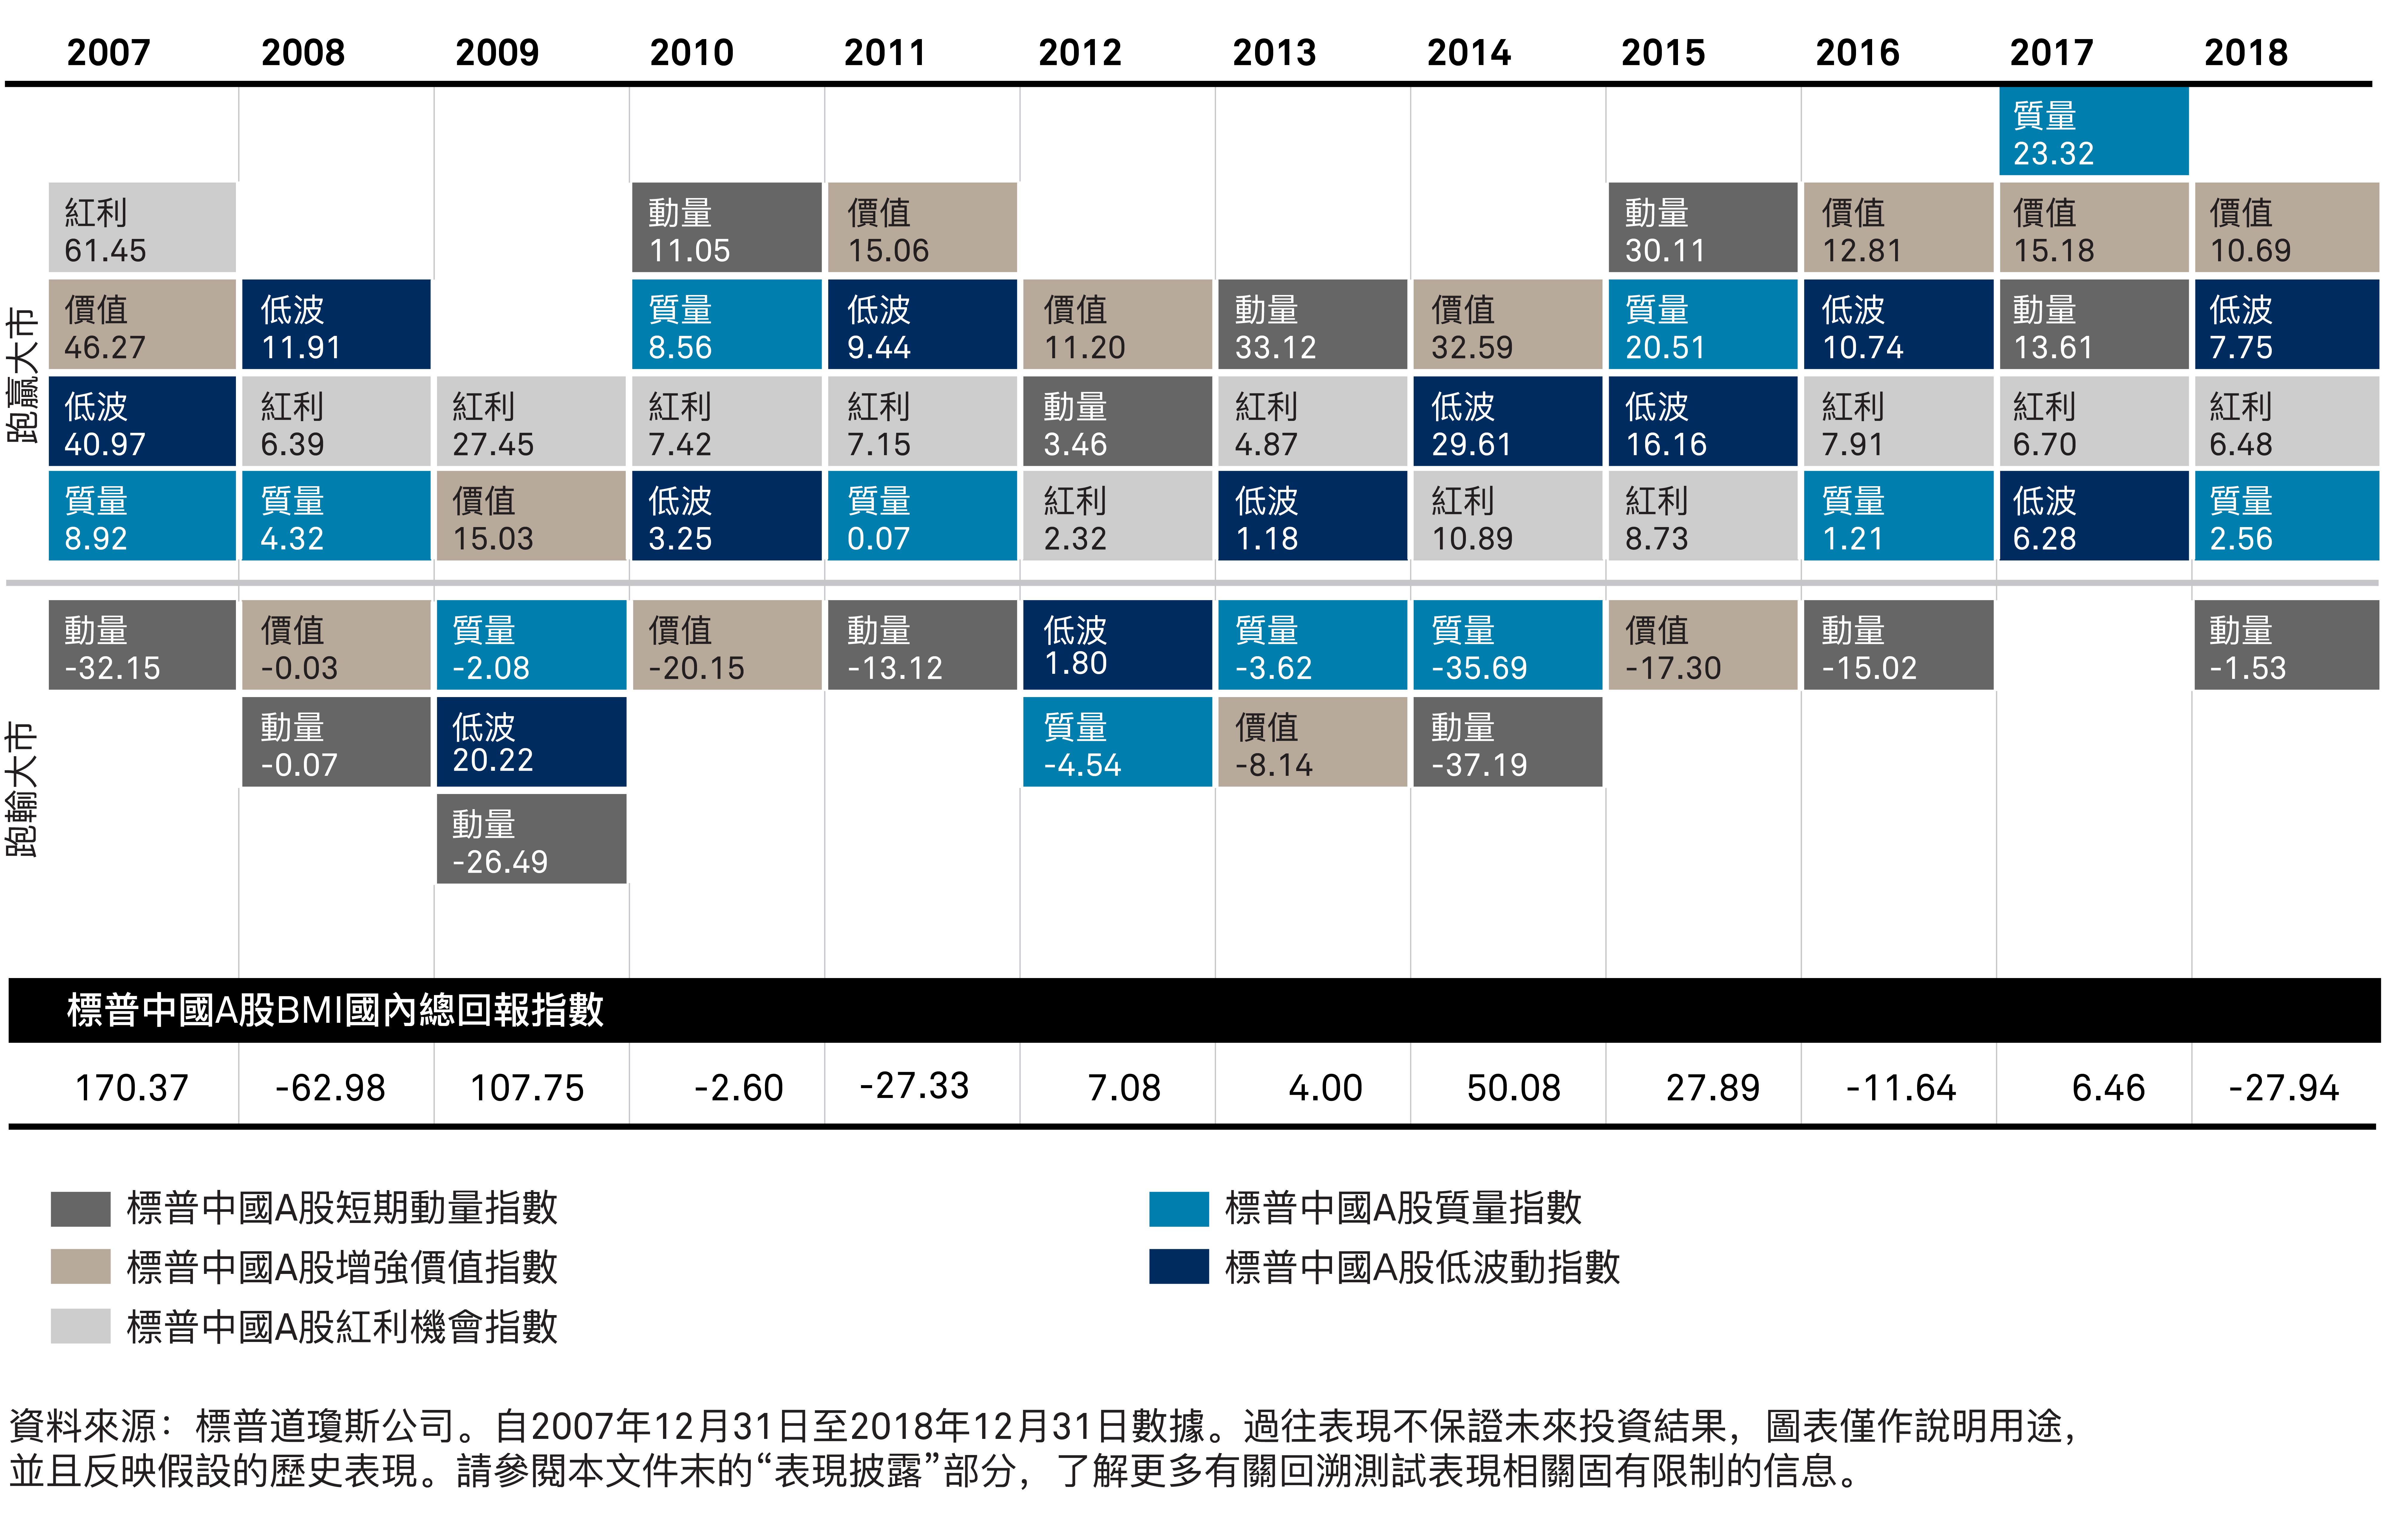 S&P China A-Share Single Factor Indices Calendar Year Excess Returns Heat Map